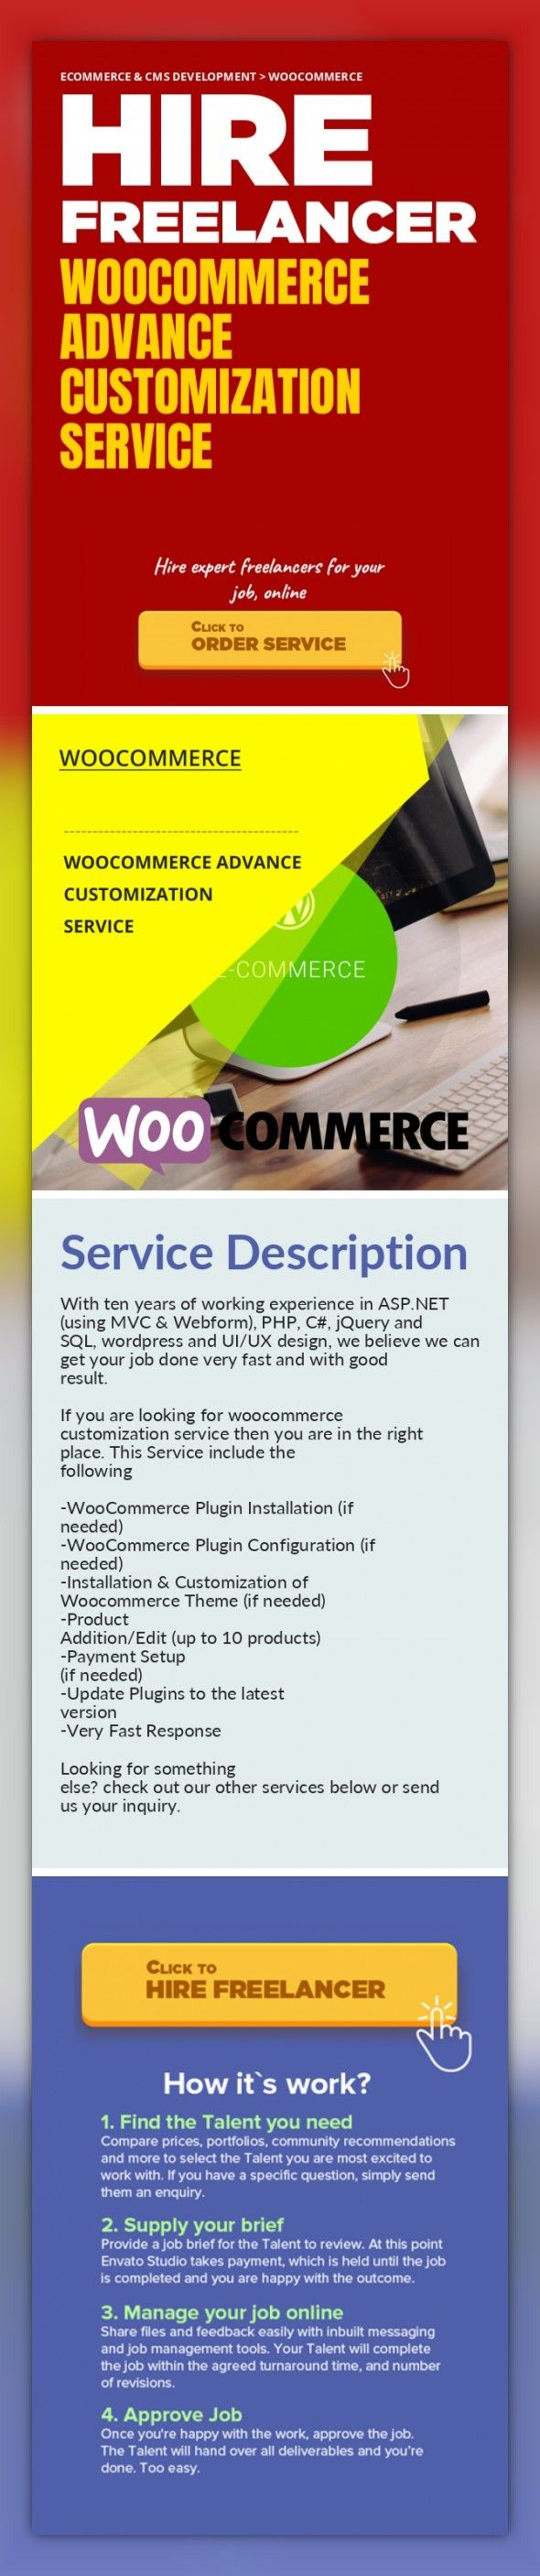 WooCommerce Advance Customization Service Ecommerce & CMS Development, WooCommerce   With ten years of working experience in ASP.NET (using MVC & Webform), PHP, C#, jQuery and SQL, wordpress and UI/UX design, we believe we can get your job done very fast and with good result.    If you are looking for woocommerce customization service then you are in the right place. This Service include the f...